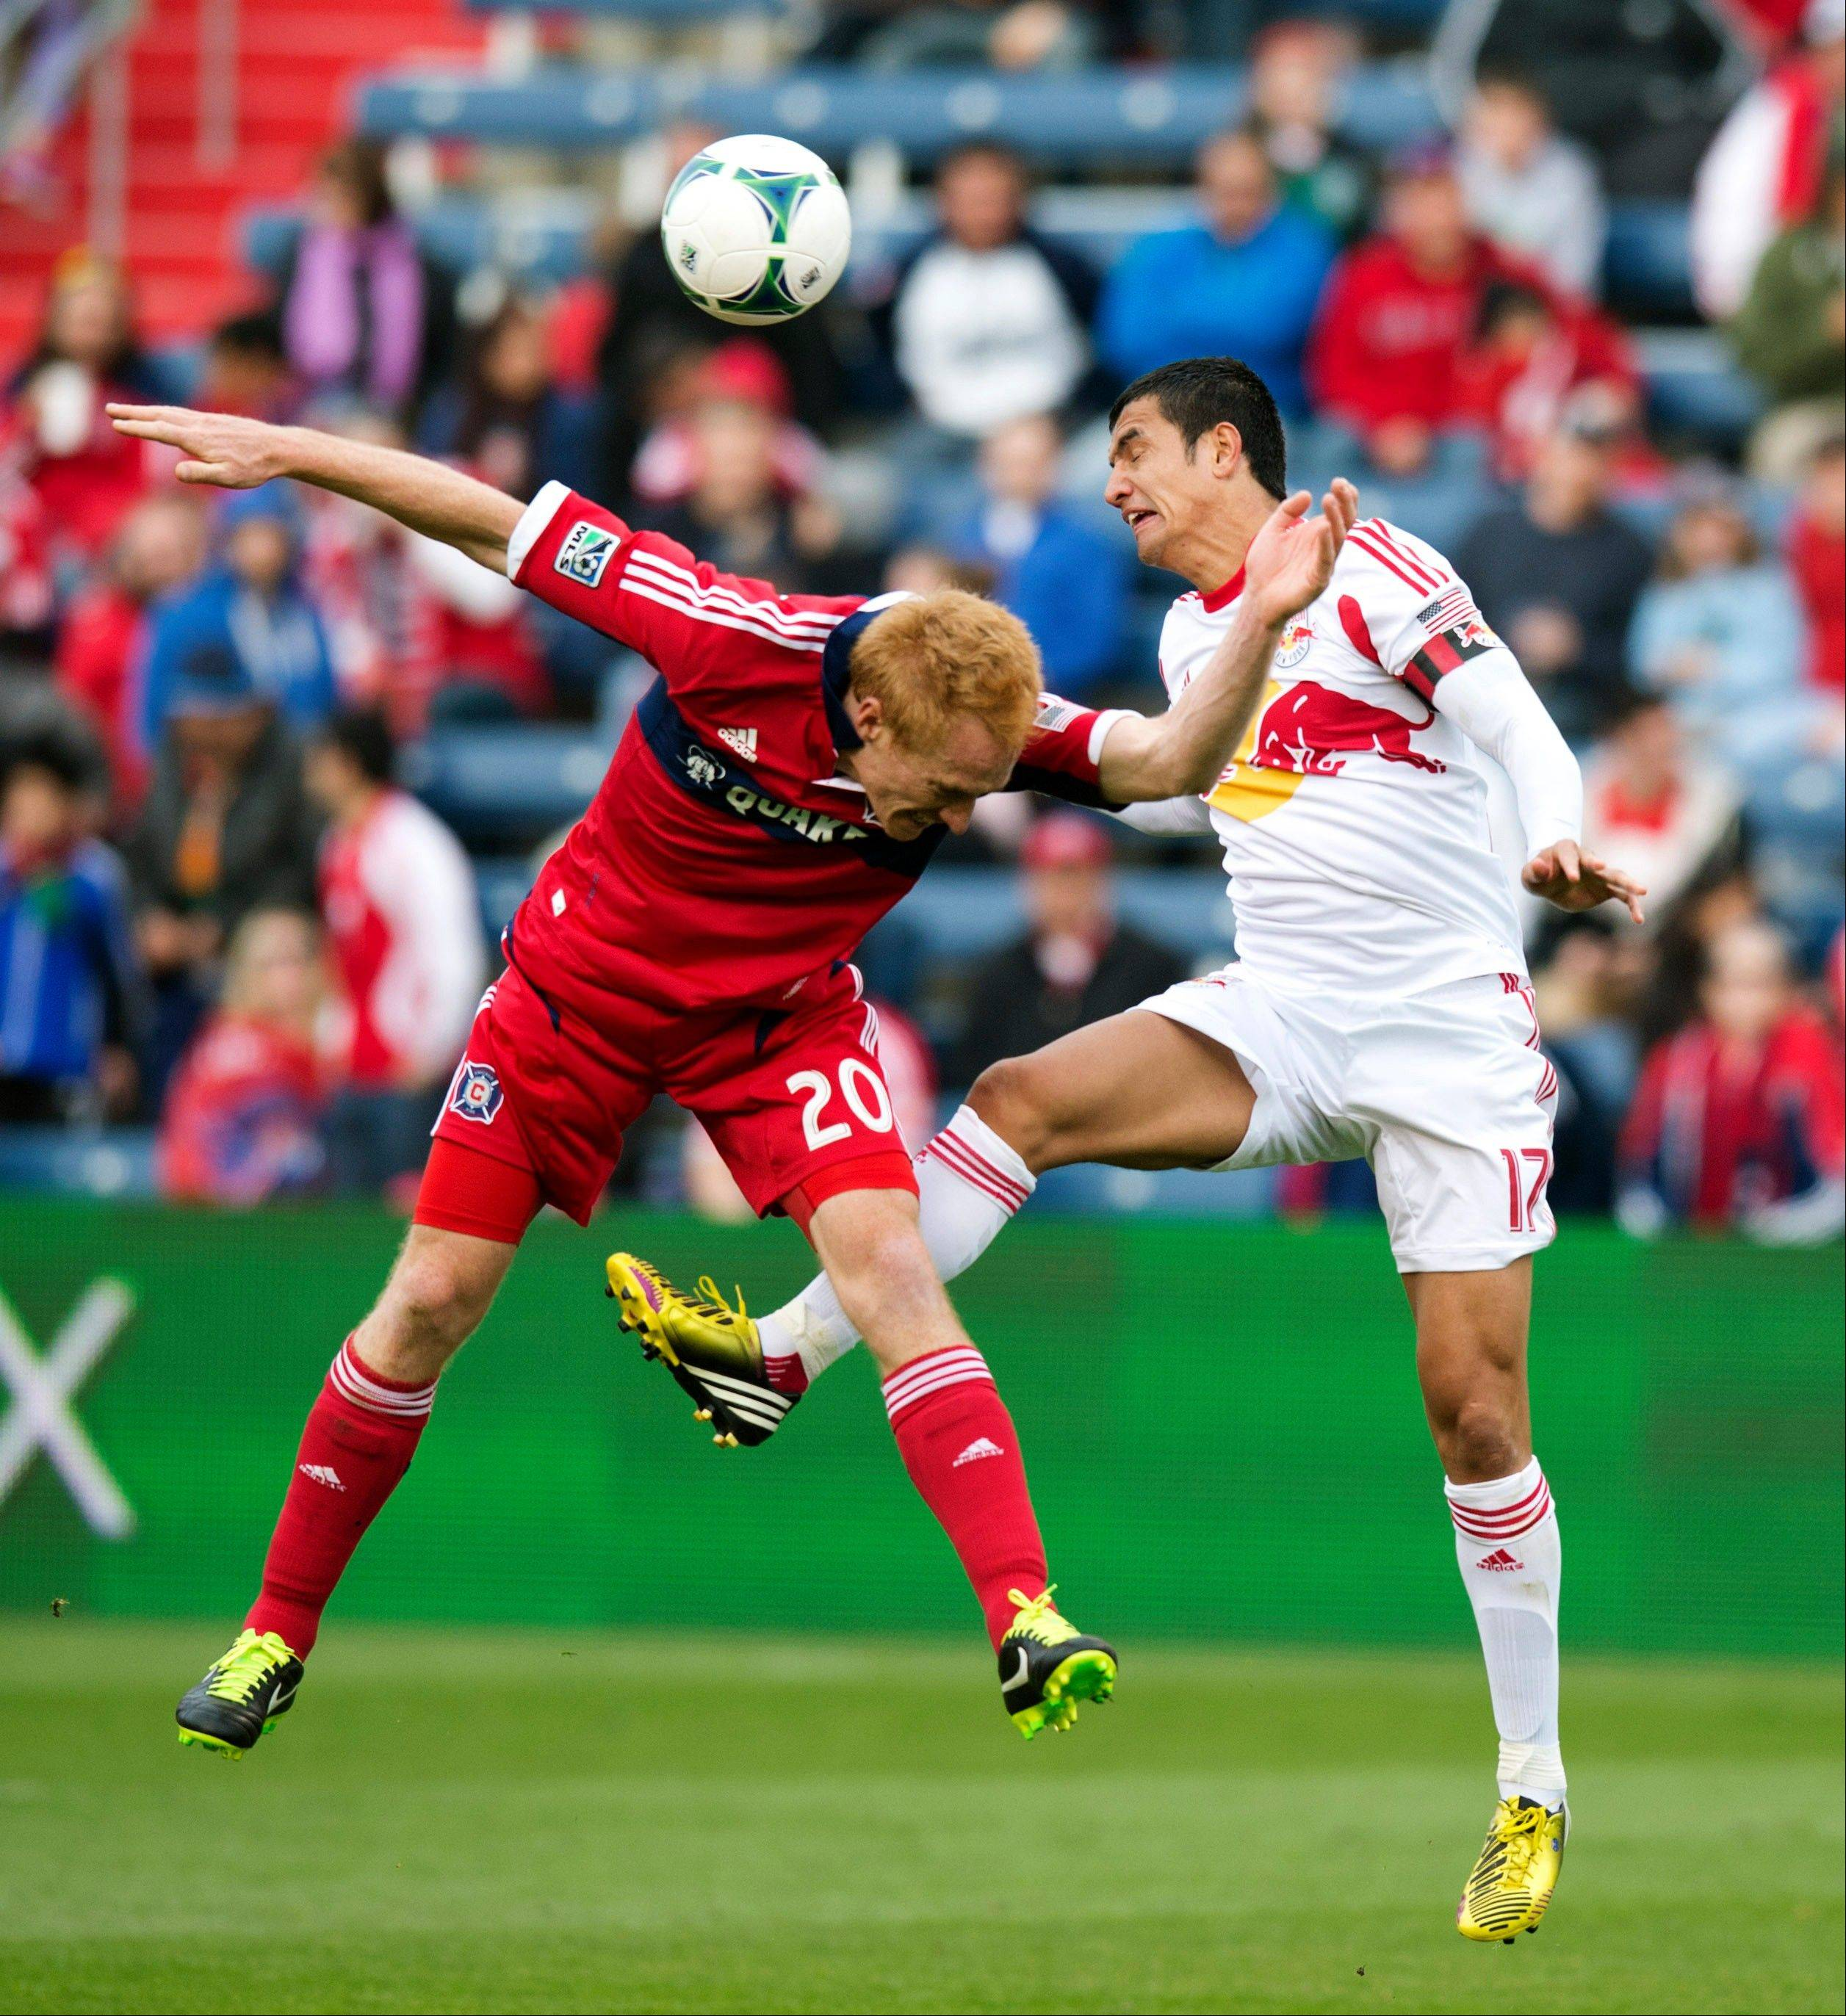 In this photo provided by the Chicago Fire, New York Red Bulls forward Tim Cahill, right, and Chicago Fire midfielder Jeff Larentowicz go for the ball during the second half of an MLS soccer match, Sunday, April 7, 2013, in Bridgeview, Ill. The Fire won 3-1.